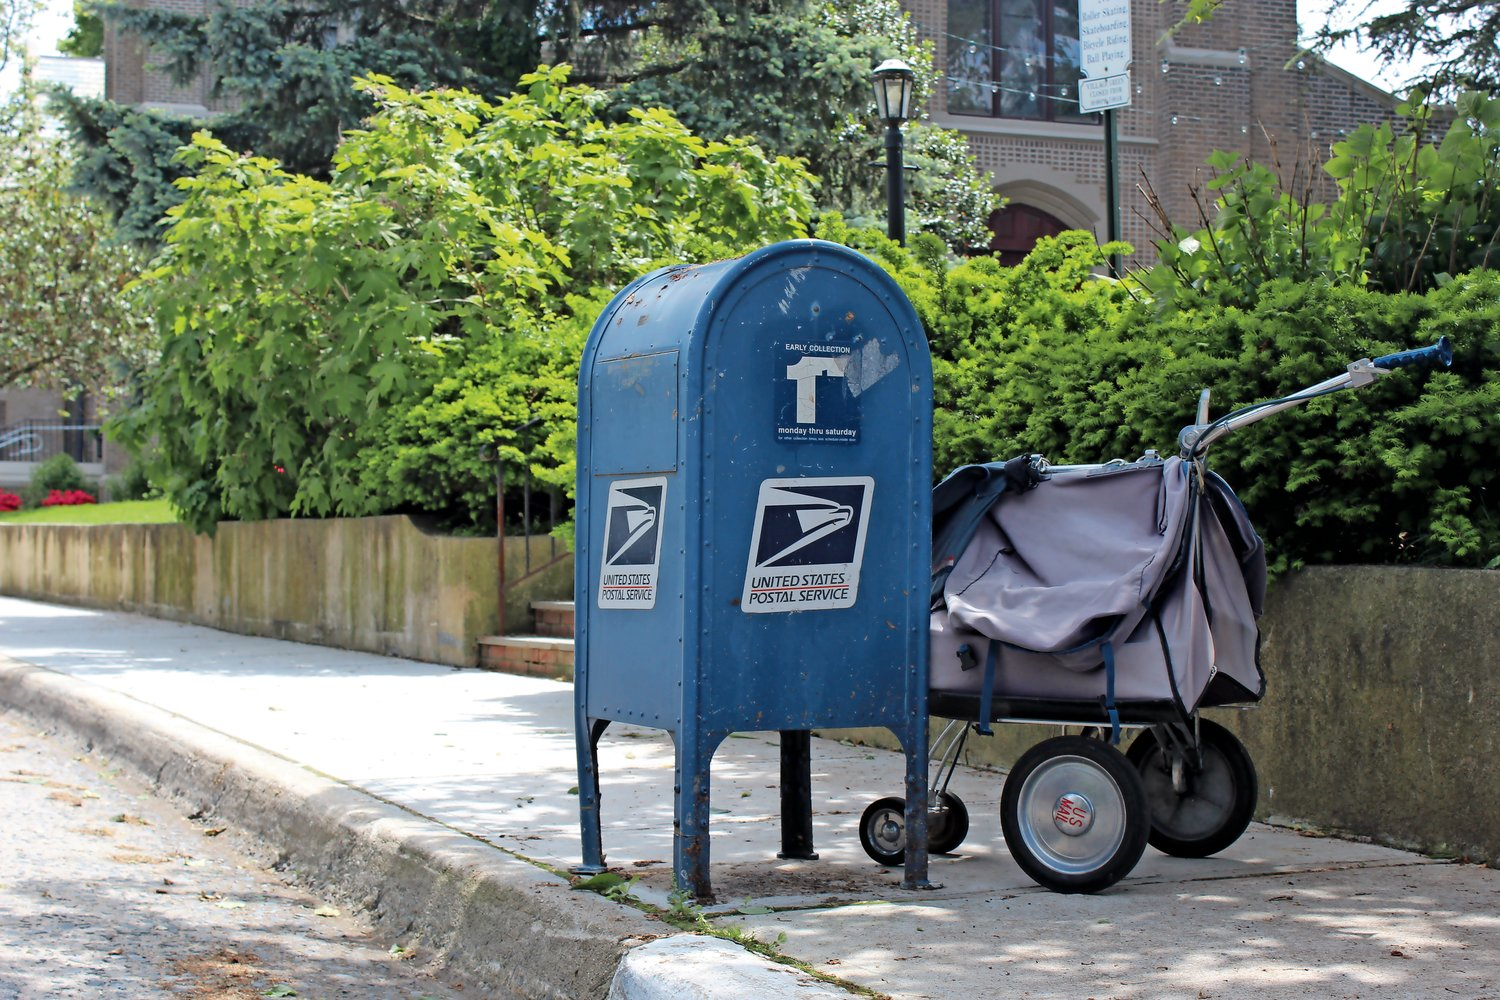 A mail carrier bag sitting unattended next to a traditional mailbox near Sea Cliff's Village Green.